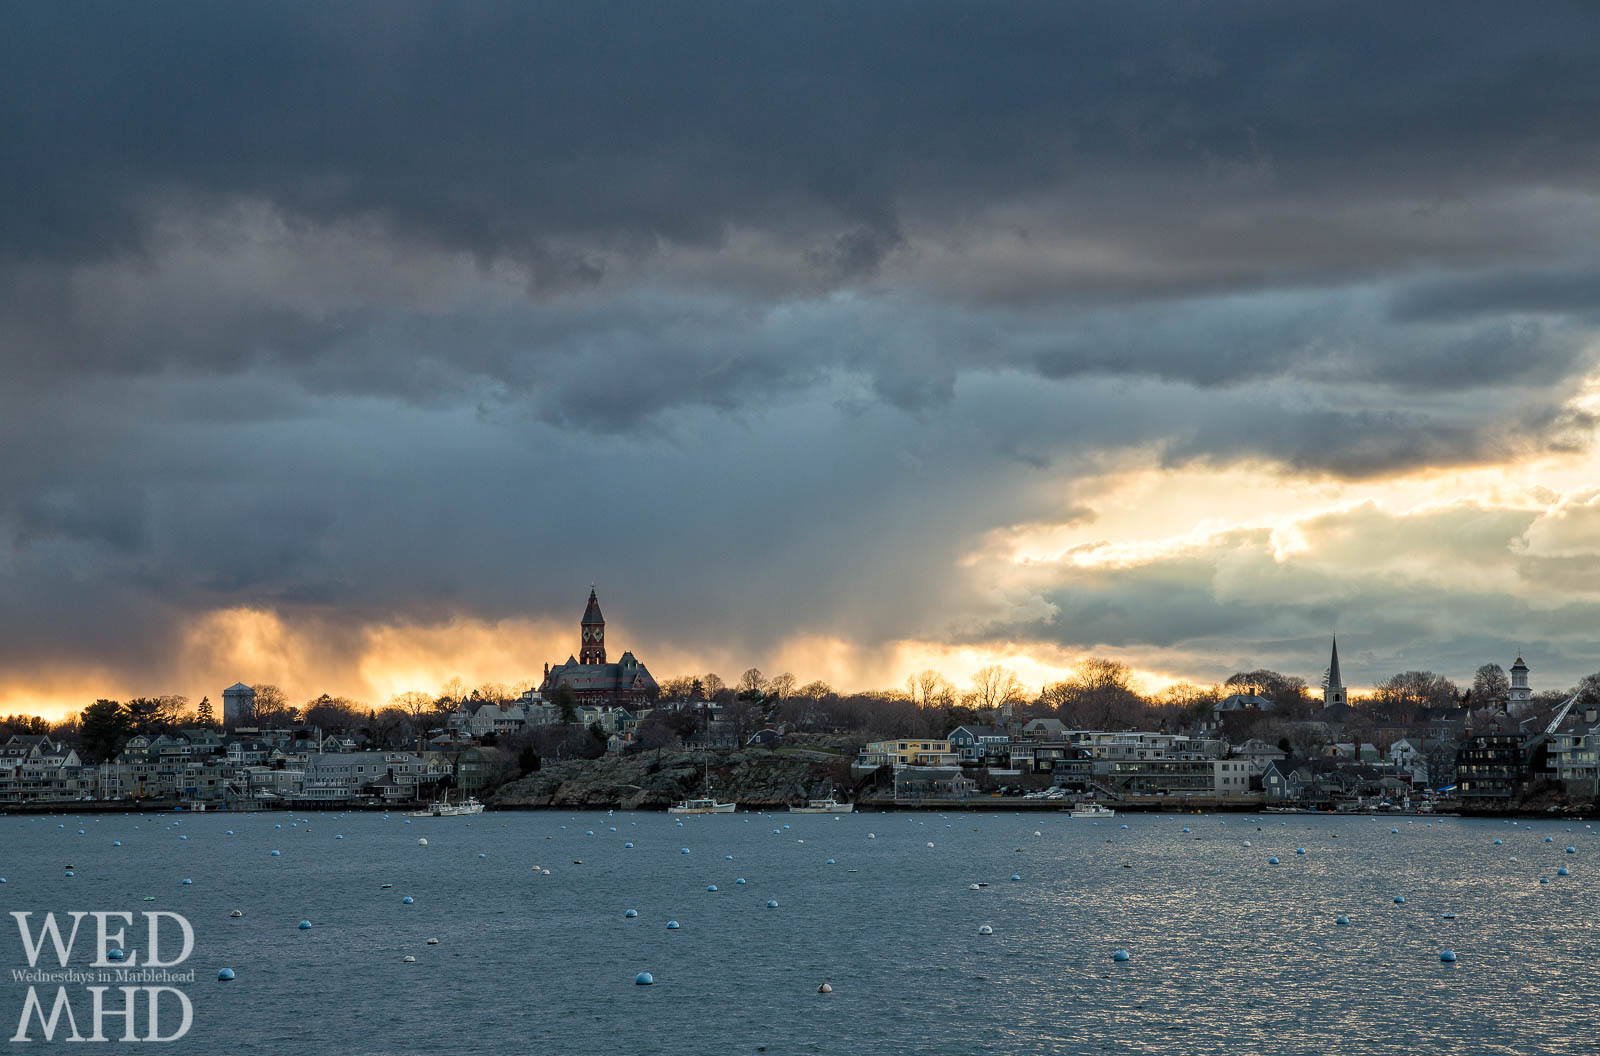 A view across Marblehead Harbor of a March sunset as it continues to build behind familiar buildings